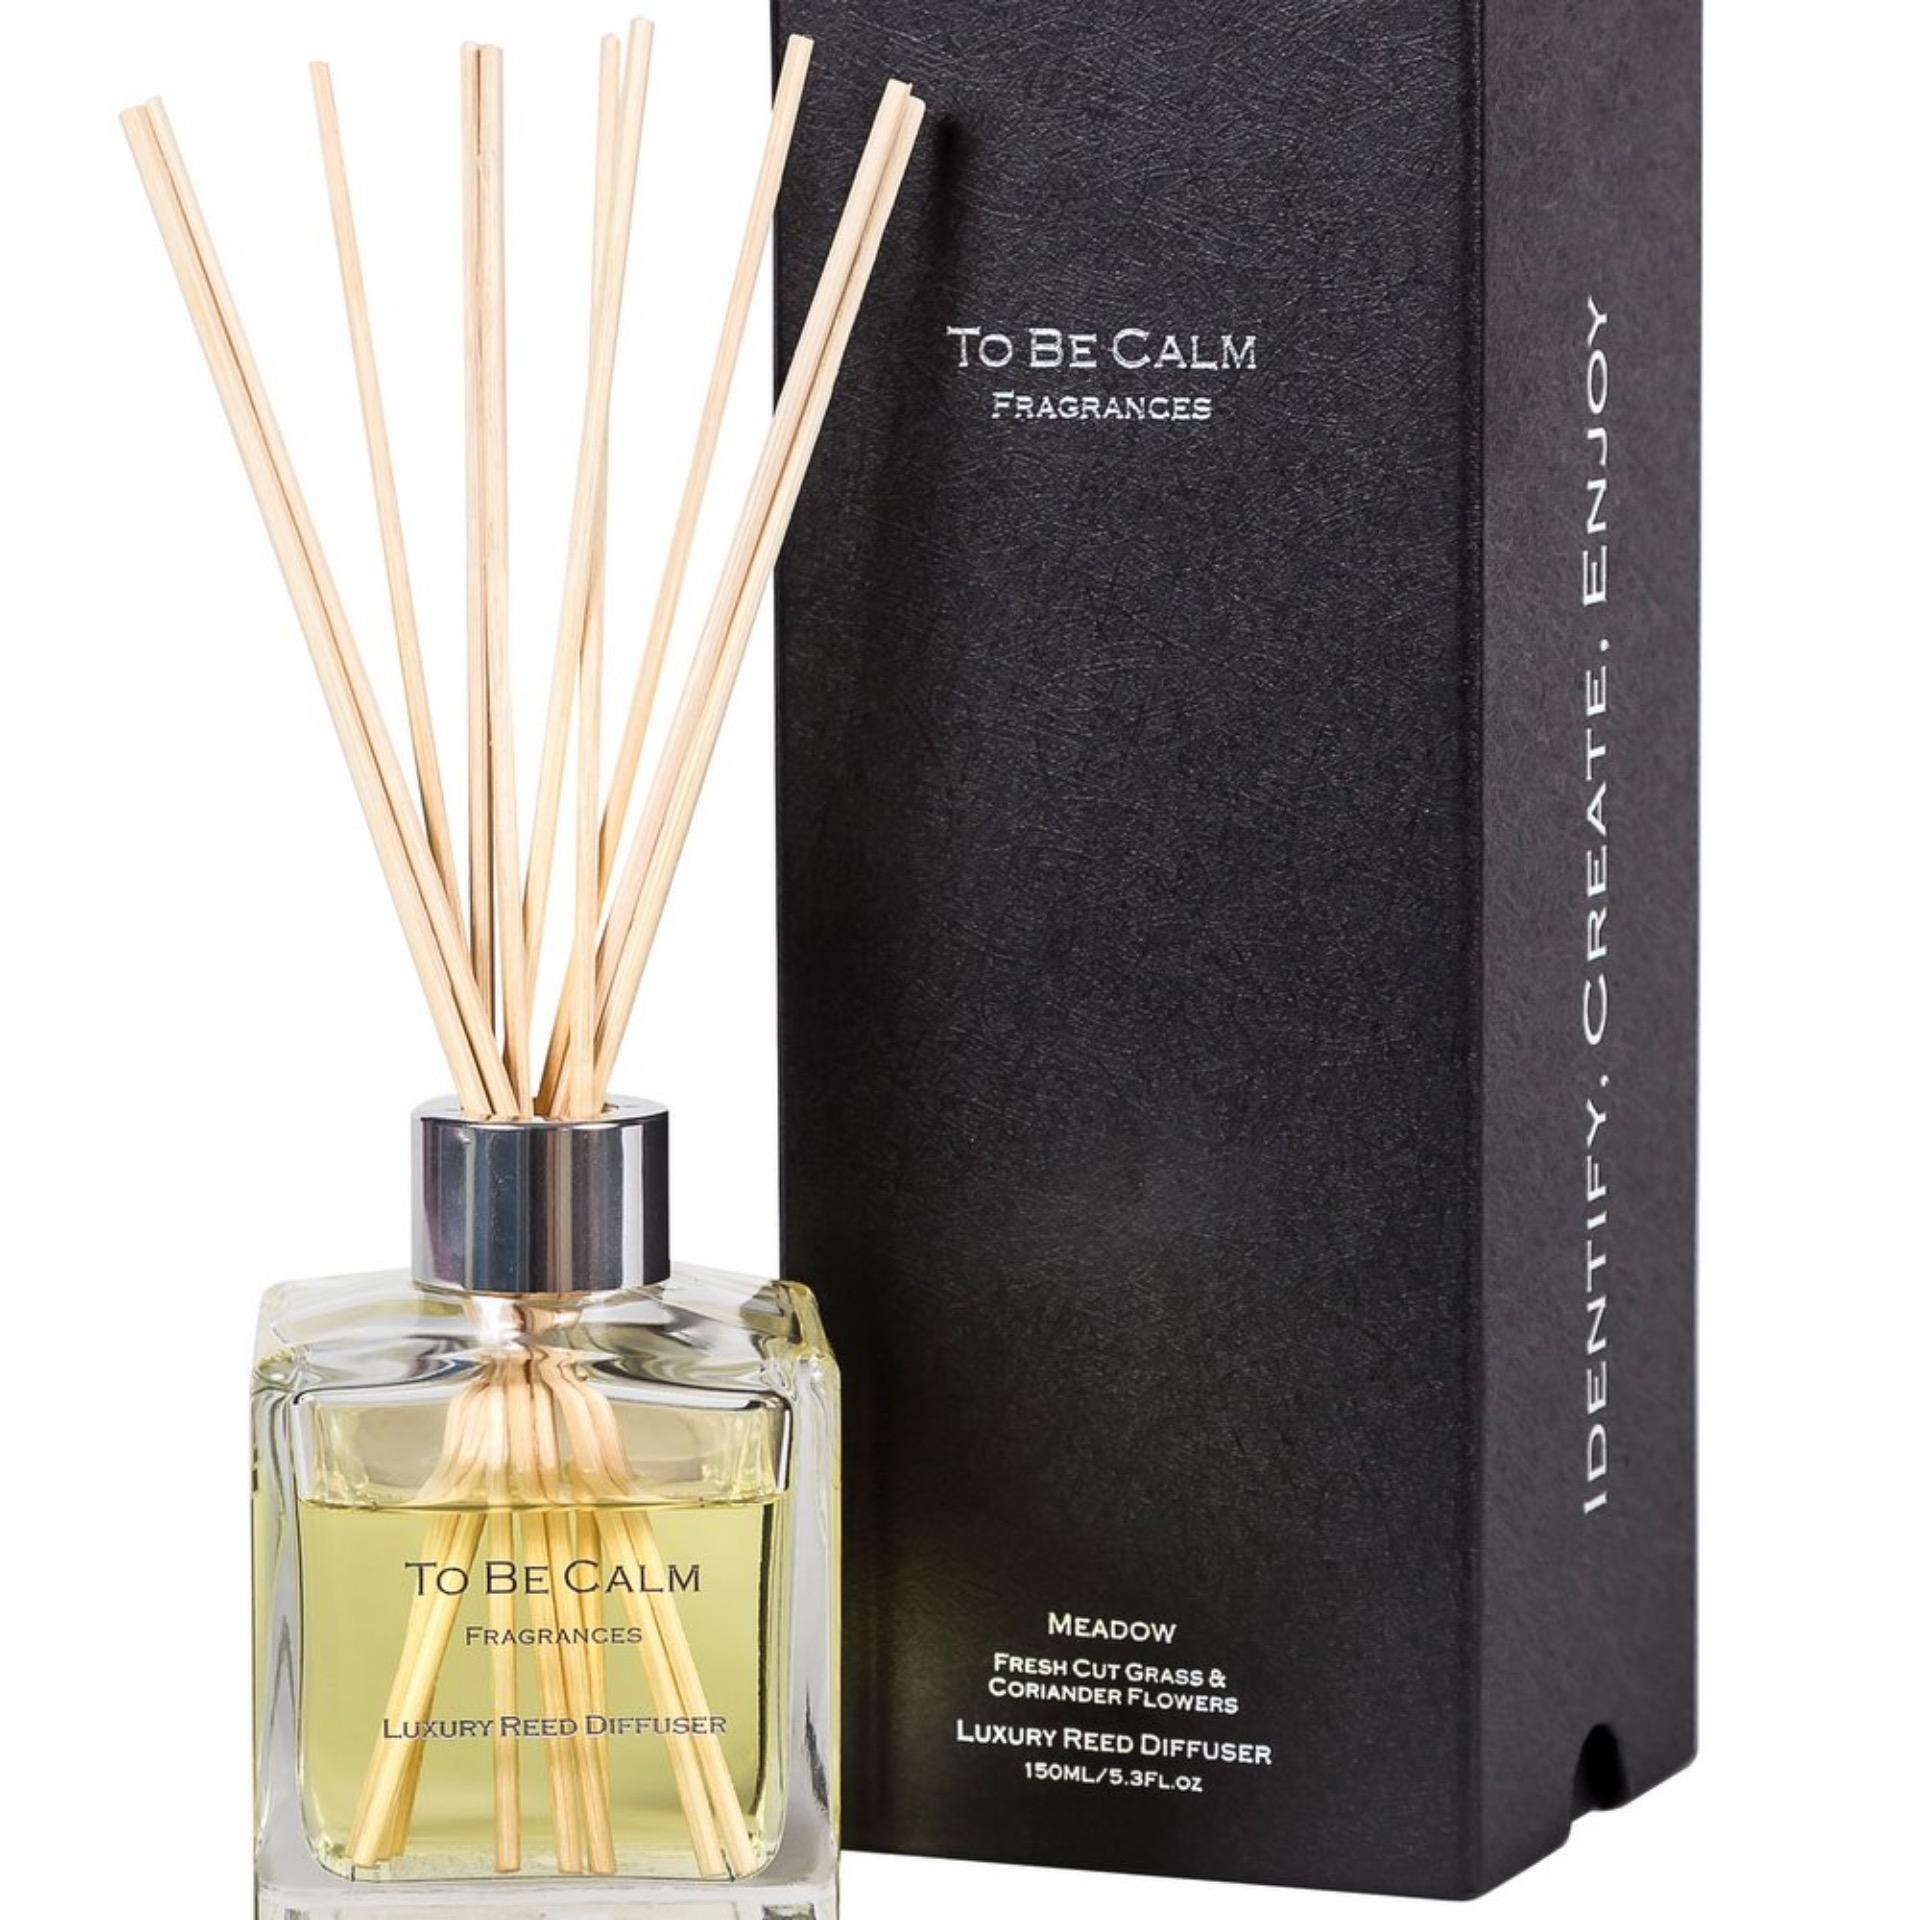 To Be Calm Meadow - Fresh Cut Grass & Coriander Flower - Reed Diffuser